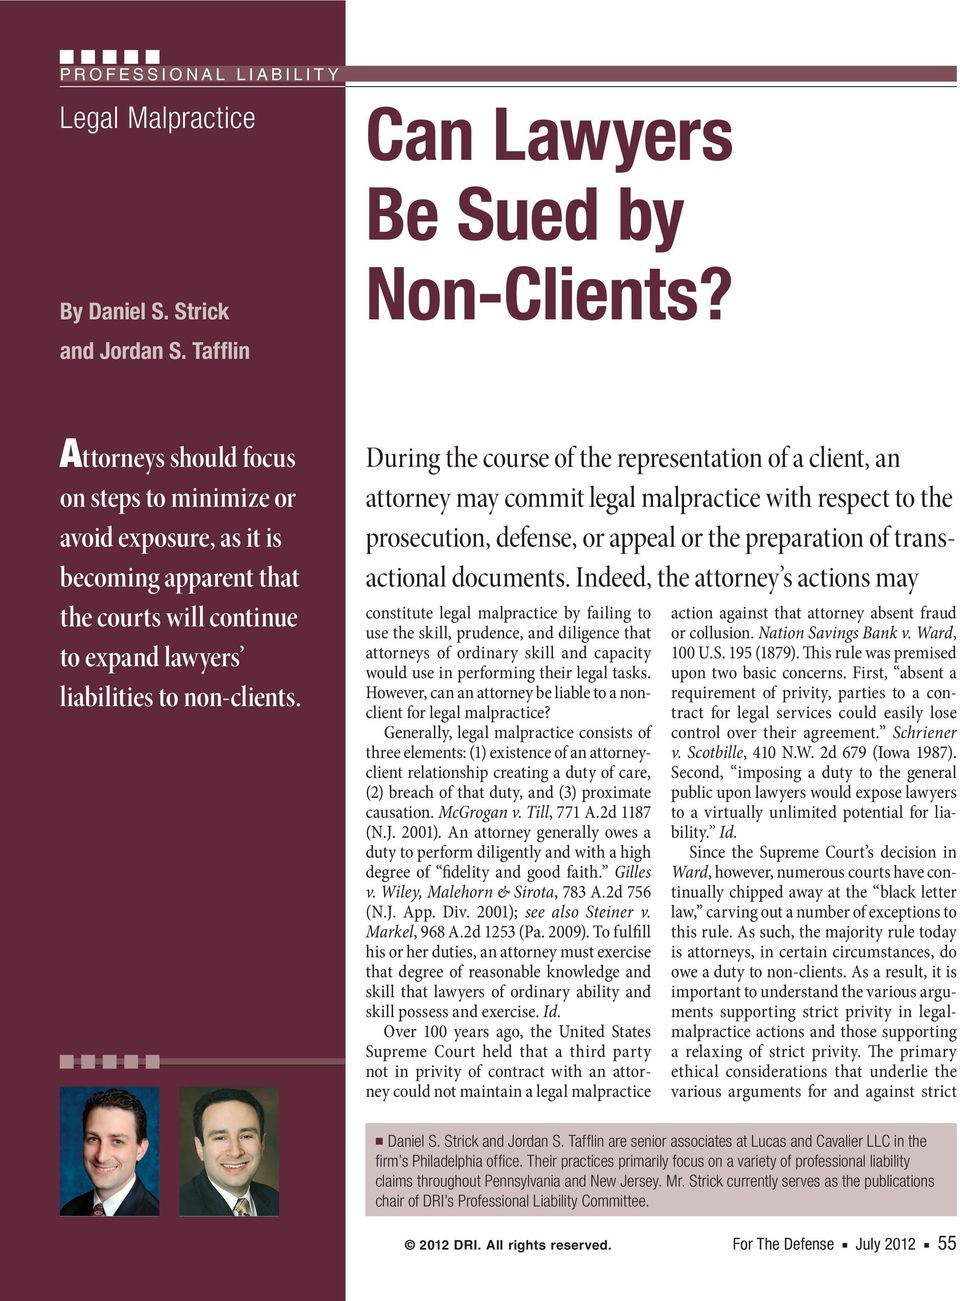 During the course of the representation of a client, an attorney may commit legal malpractice with respect to the prosecution, defense, or appeal or the preparation of transactional documents.